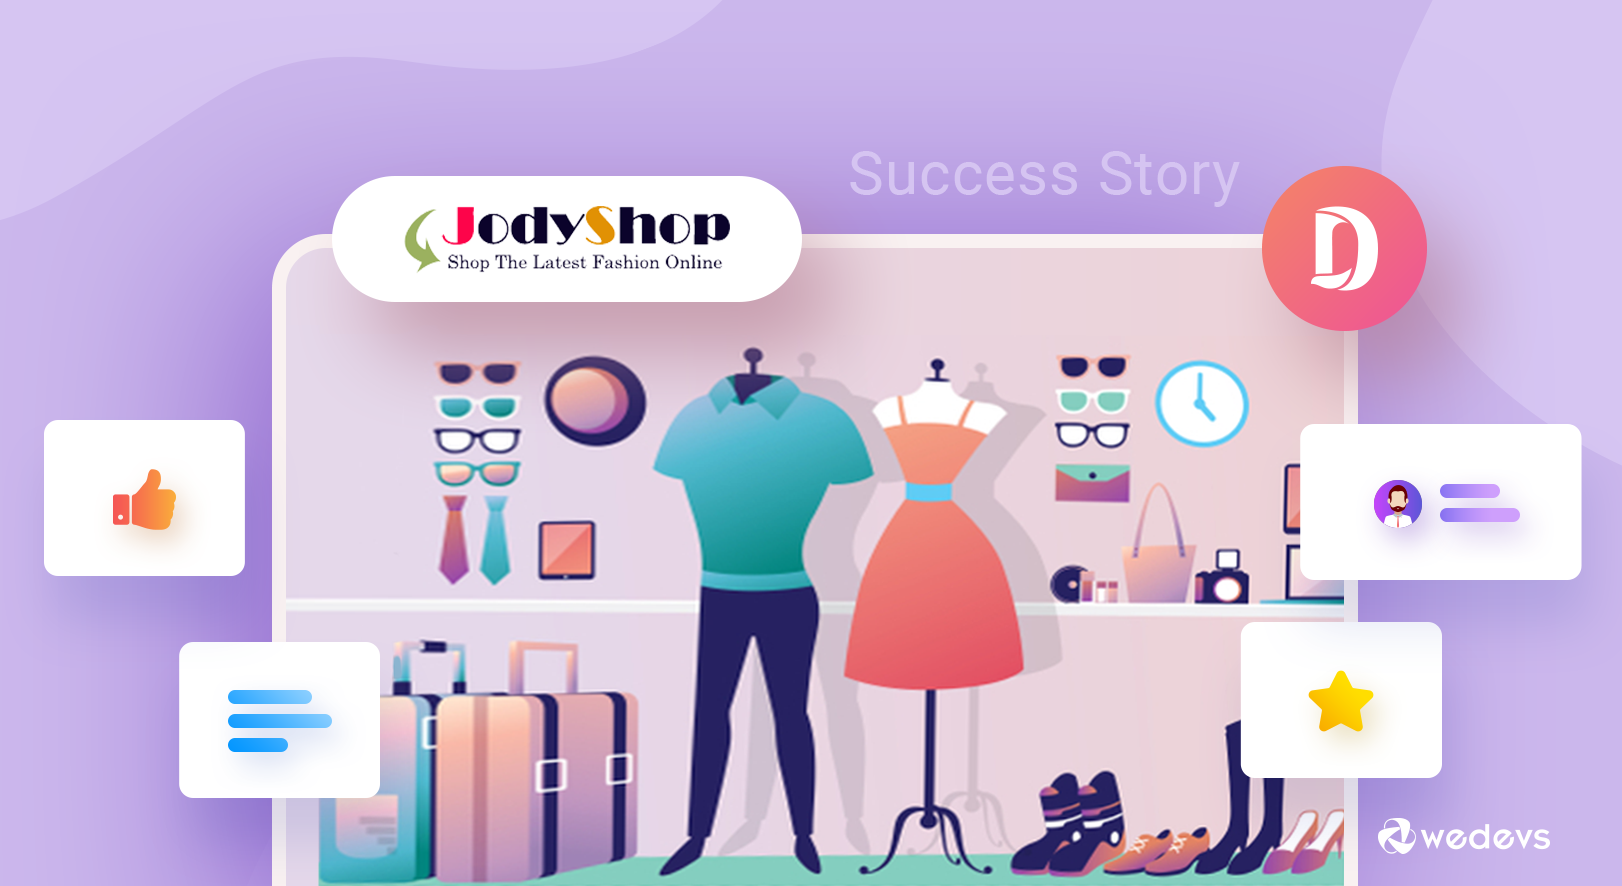 An Incredible E-commerce Success Story of a Fashion House Marketplace 'JodyShop'